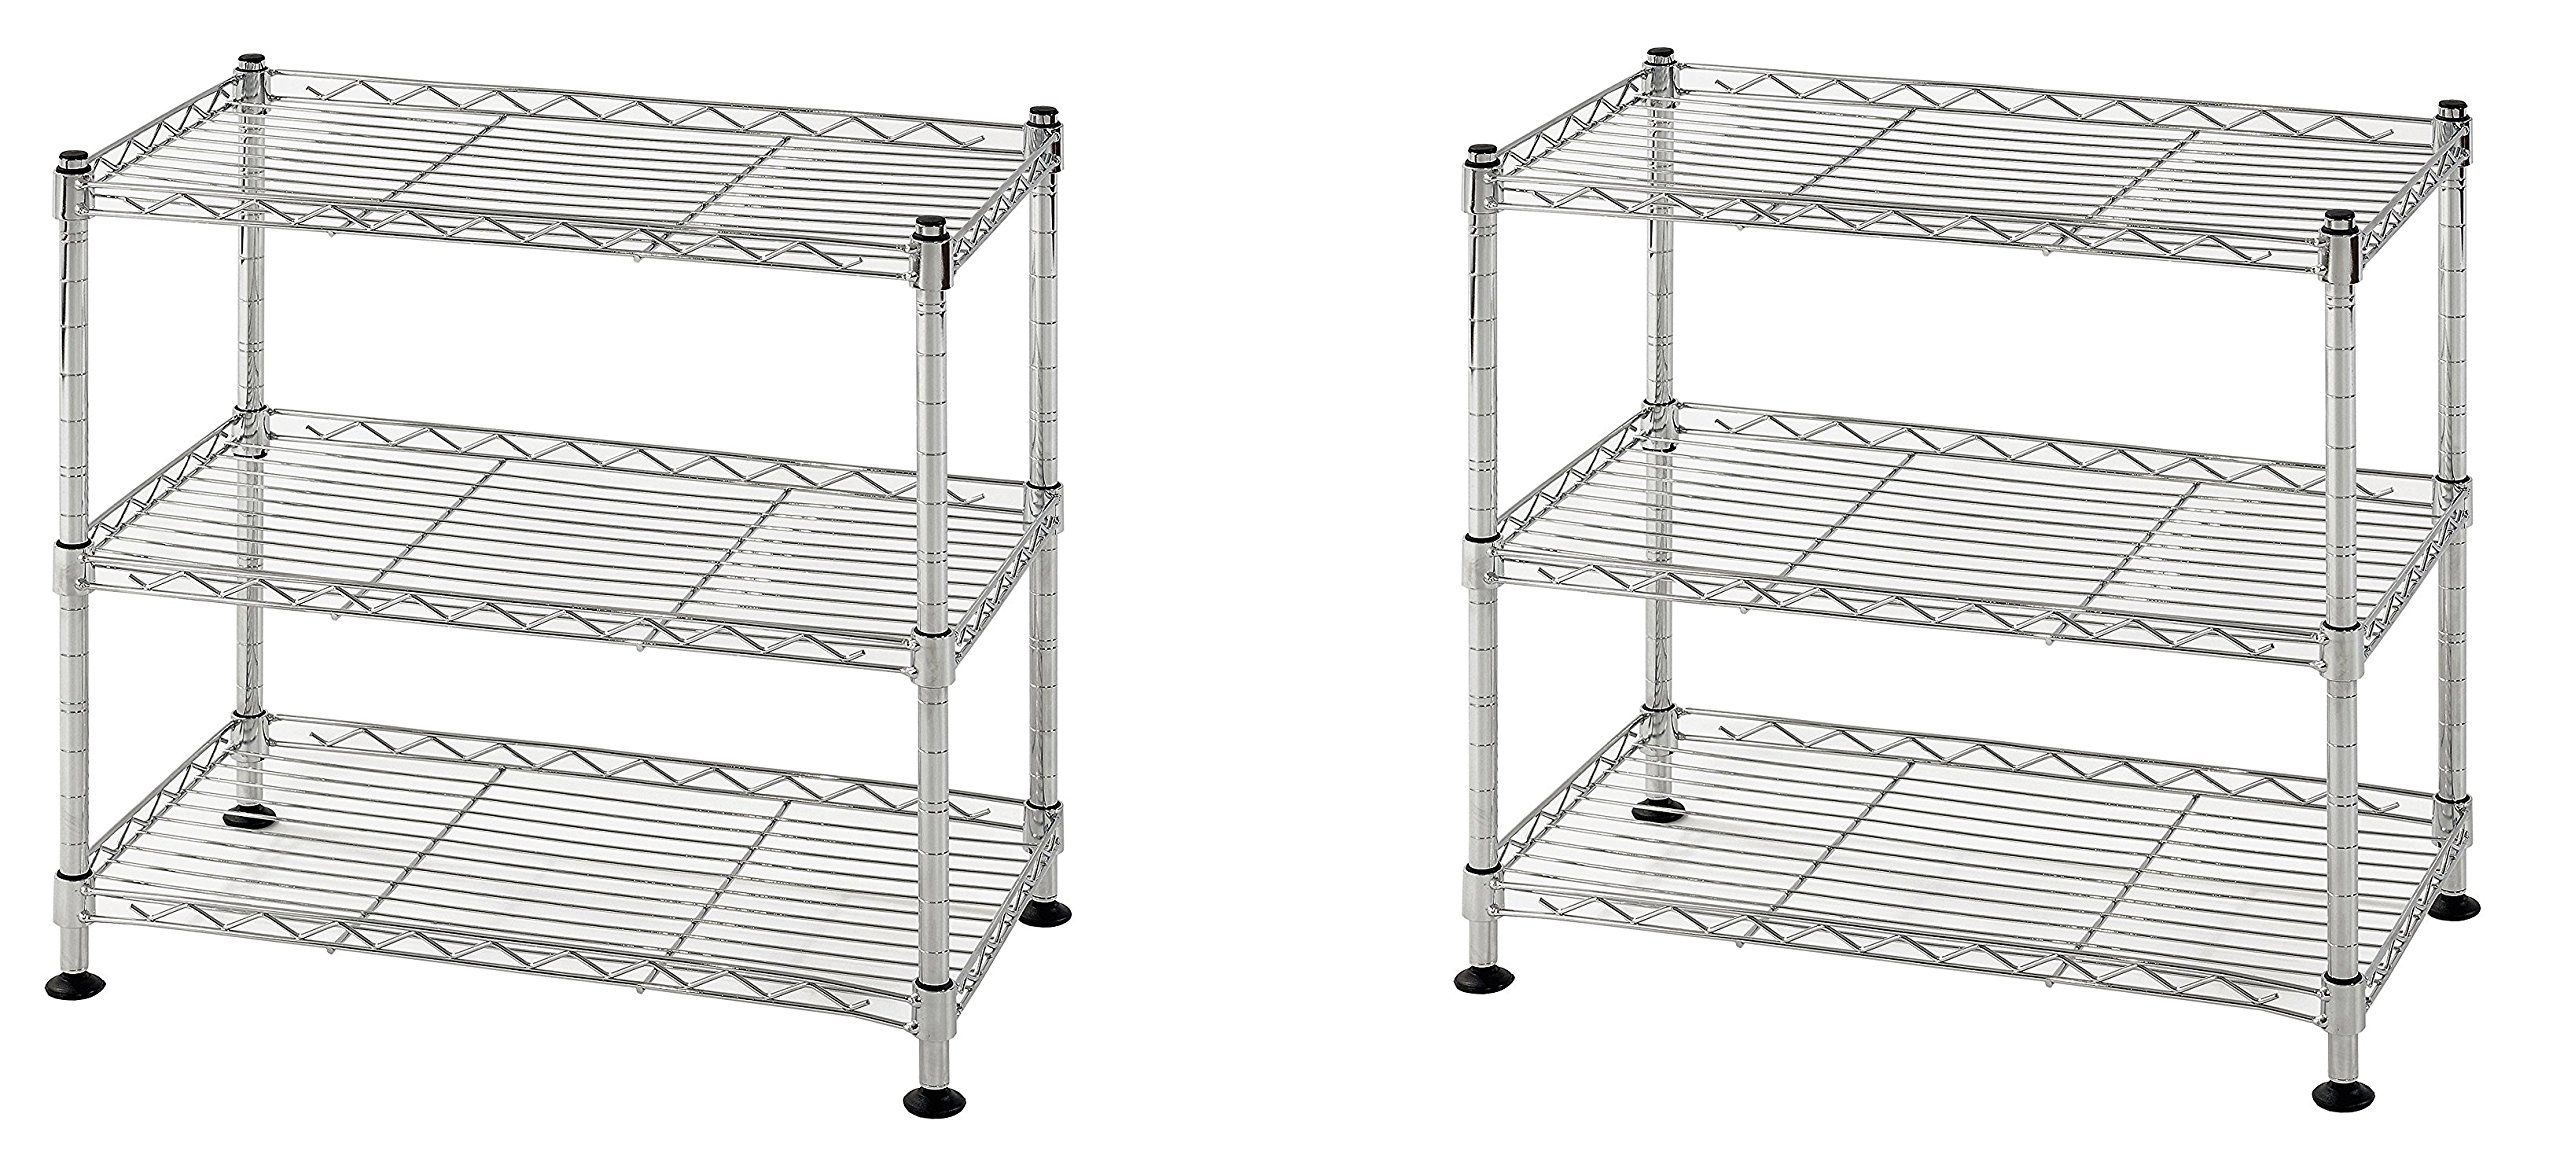 Muscle Rack WS181018-C Steel Adjustable Wire Shelving, 3 Shelves, Chrome, 18'' Height, 18'' width, 264 lb. Load Capacity (.2 PACK)